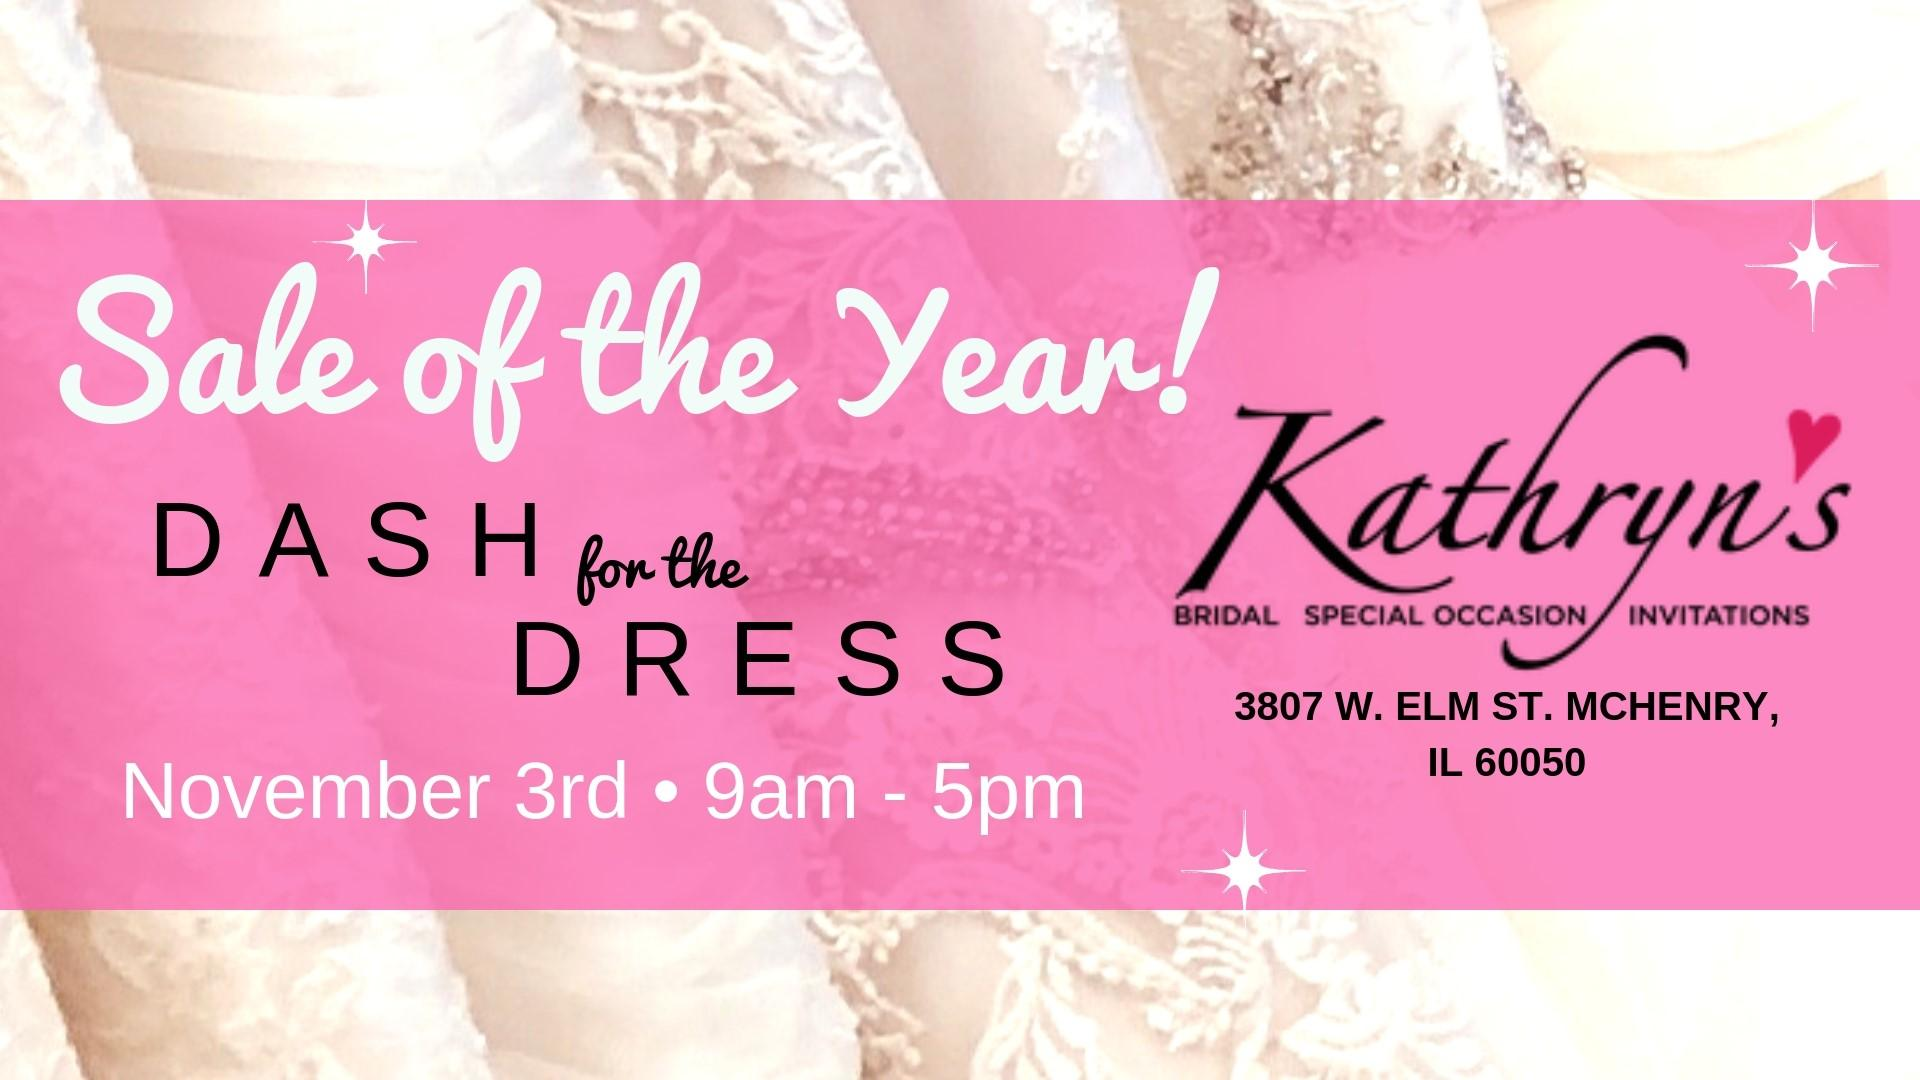 Kathryn's Bridal Sale of the Year - Dash for the Dress - November 2018